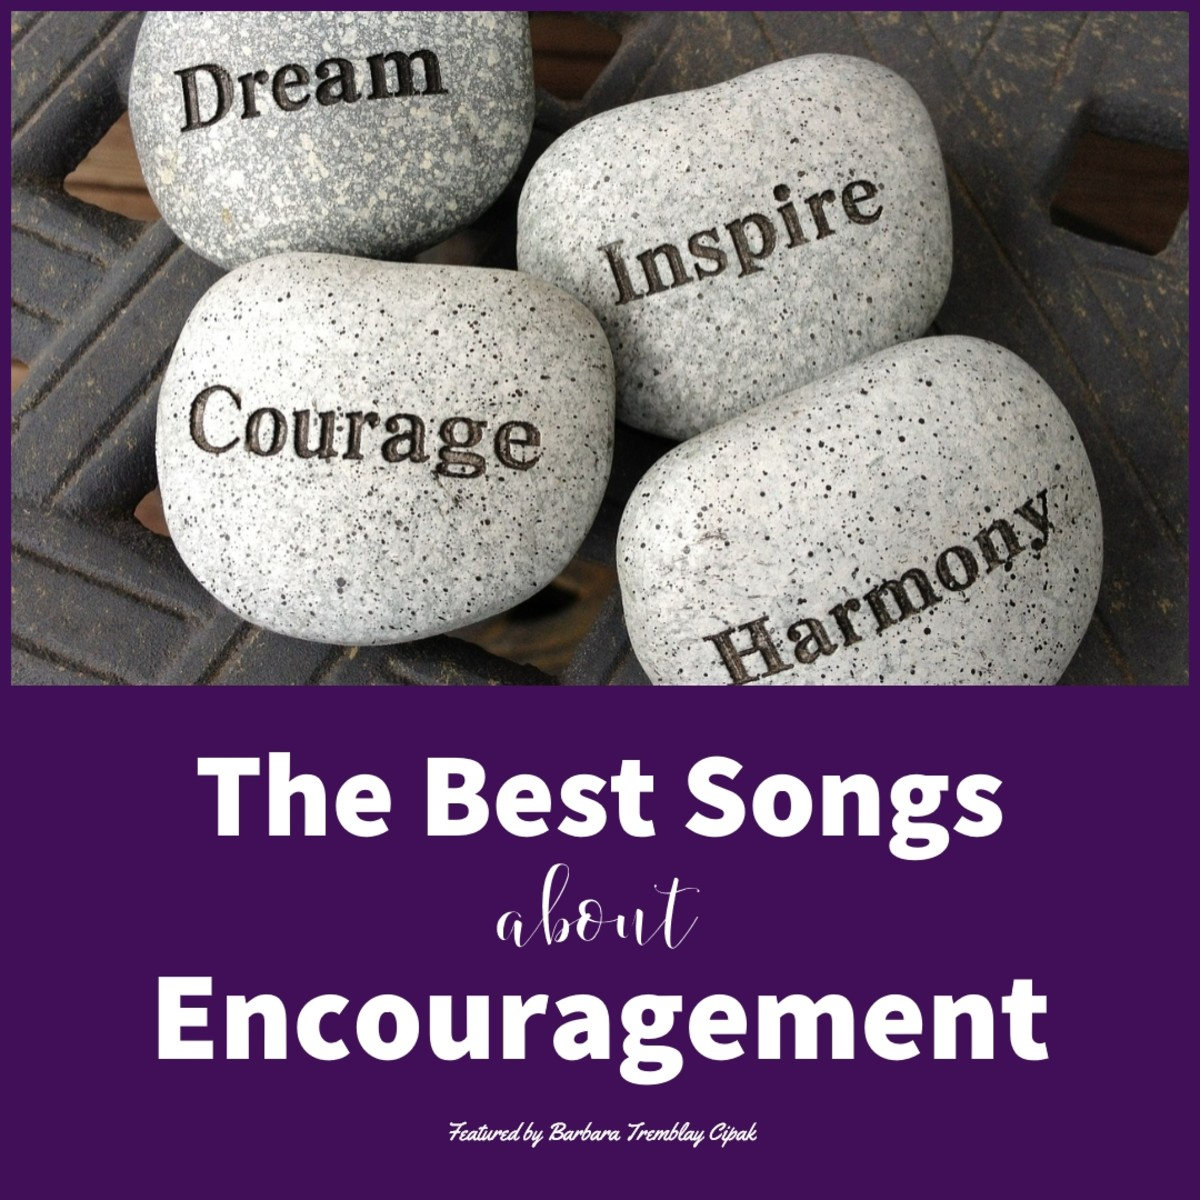 Ten of the Best Songs about Encouragement